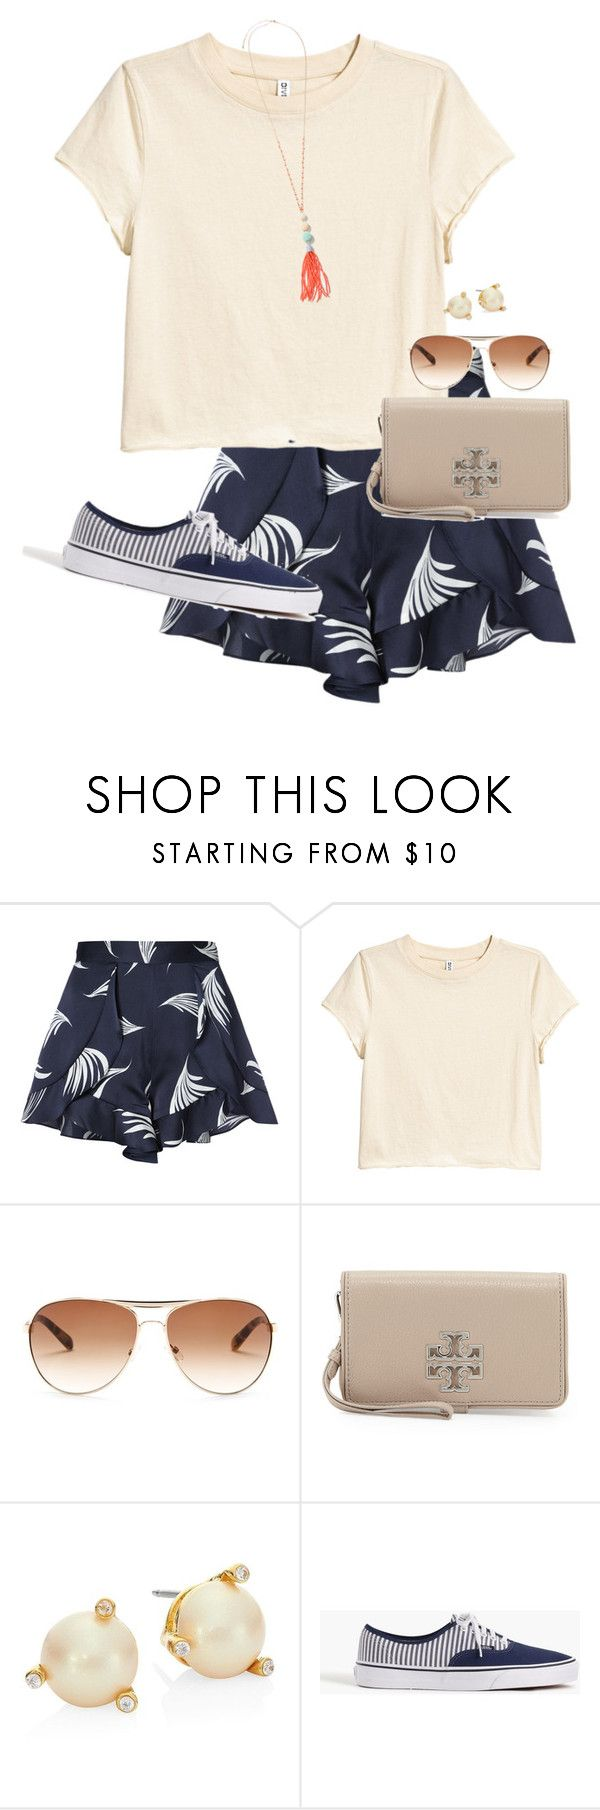 """""""Take me to the beach"""" by auburnlady ❤ liked on Polyvore featuring C/MEO COLLECTIVE, Bobbi Brown Cosmetics, Tory Burch, Kate Spade and J.Crew"""